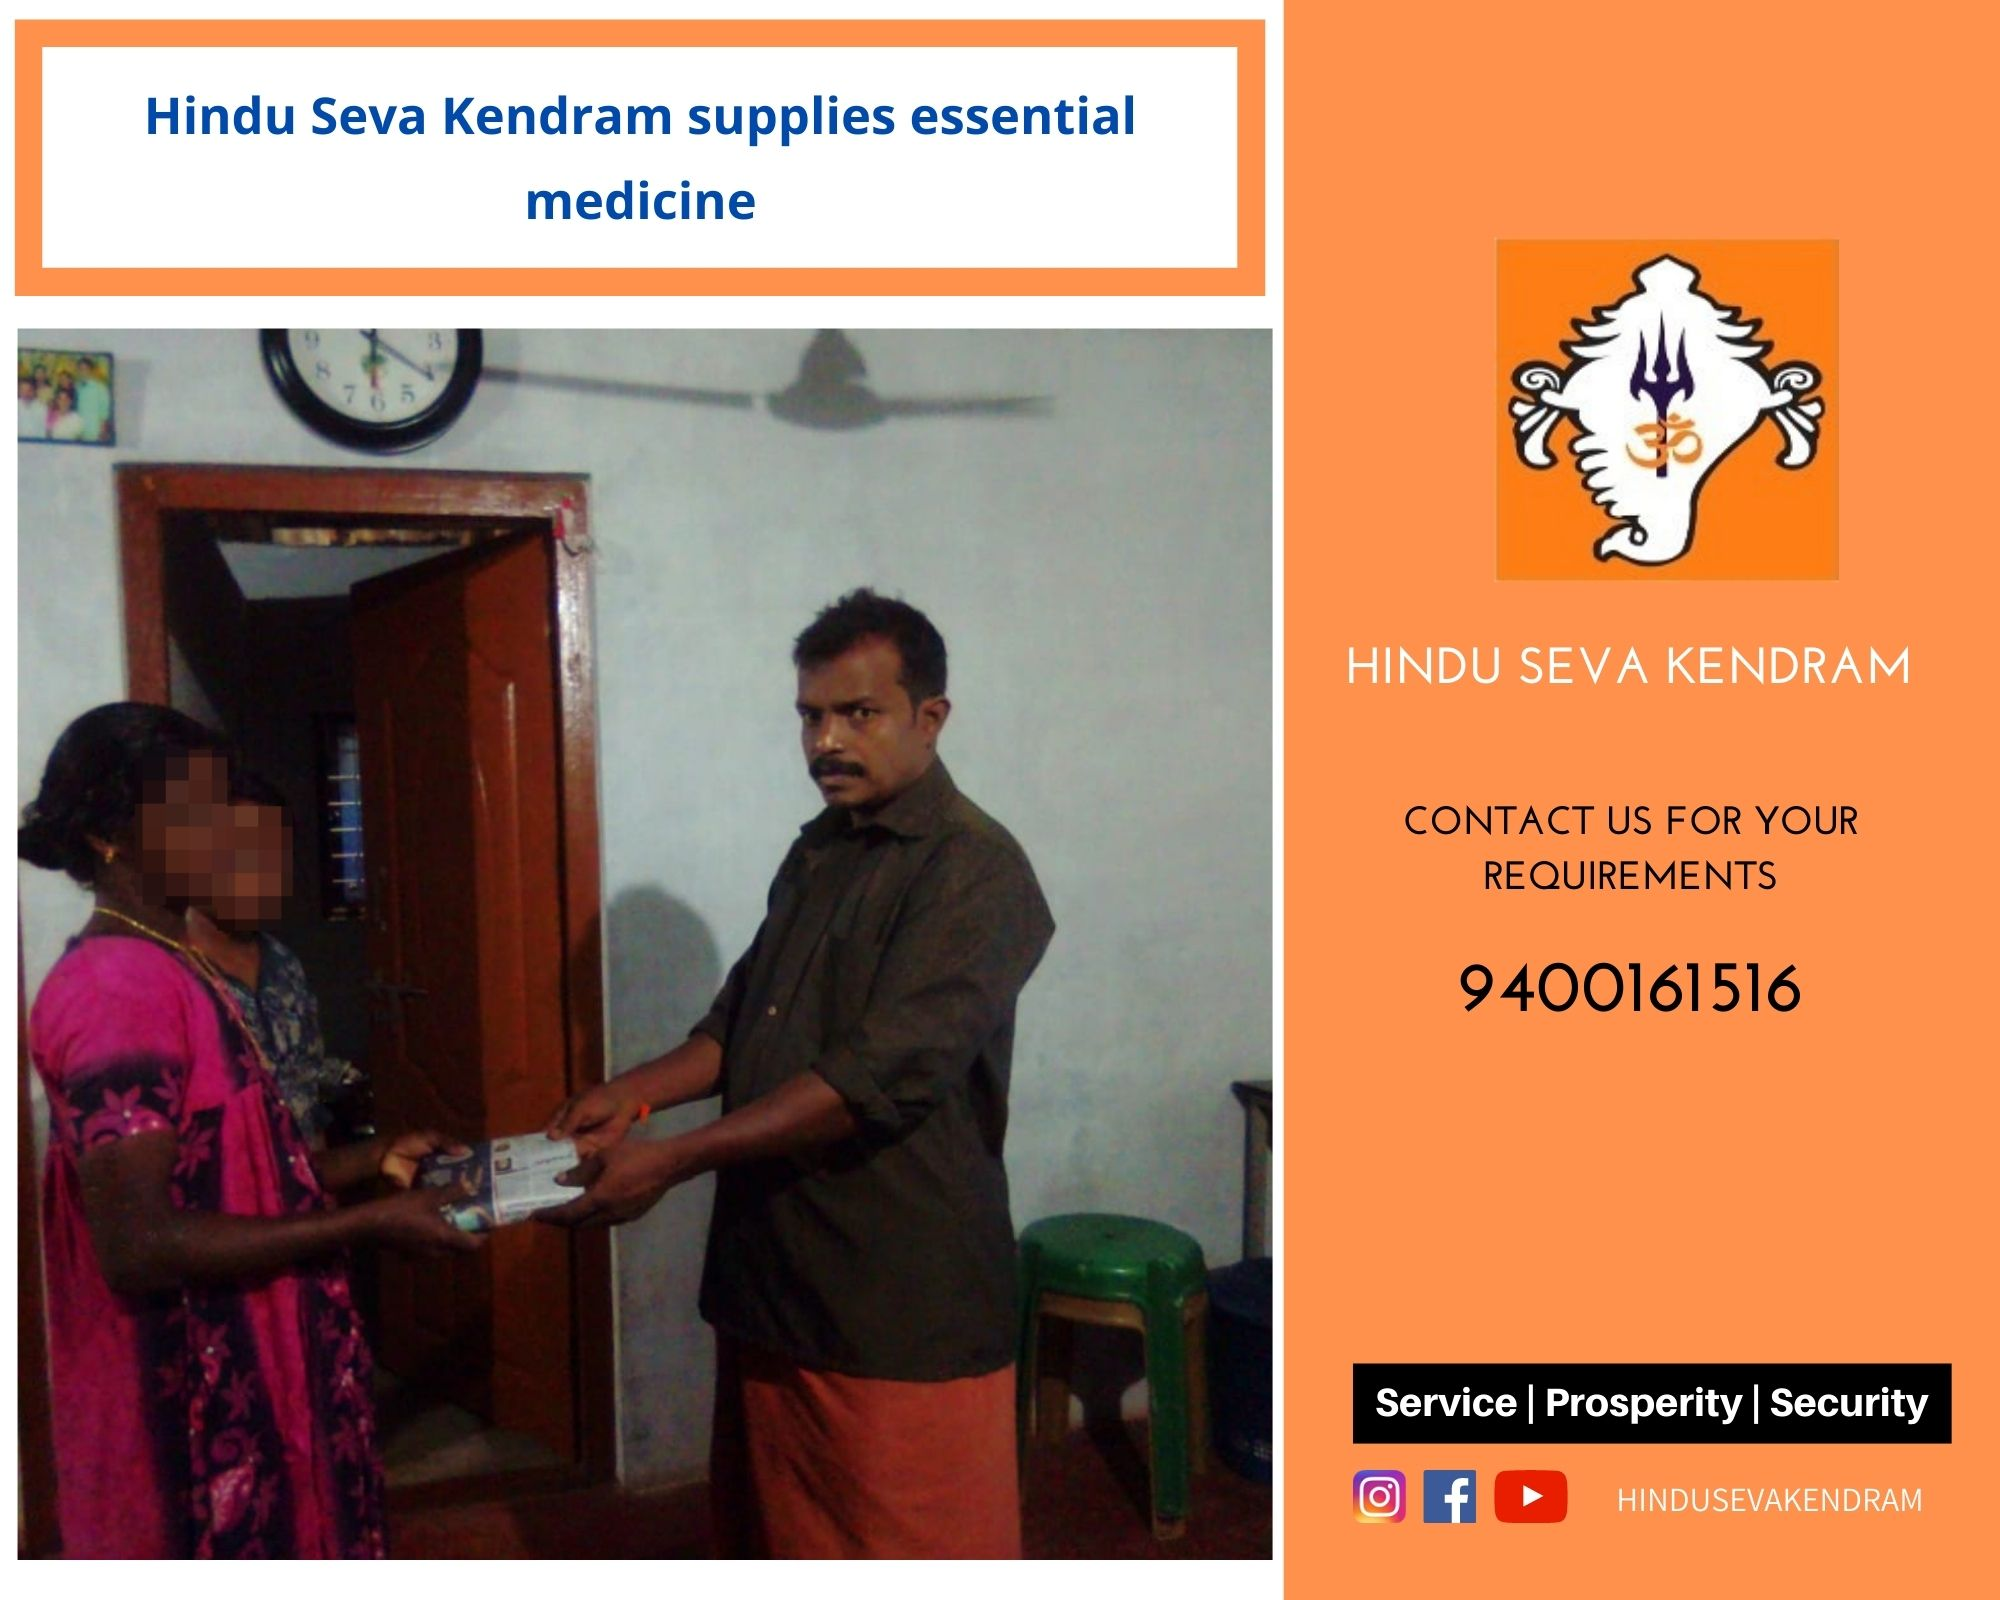 Hindu Seva Kendram supplies essential medicine